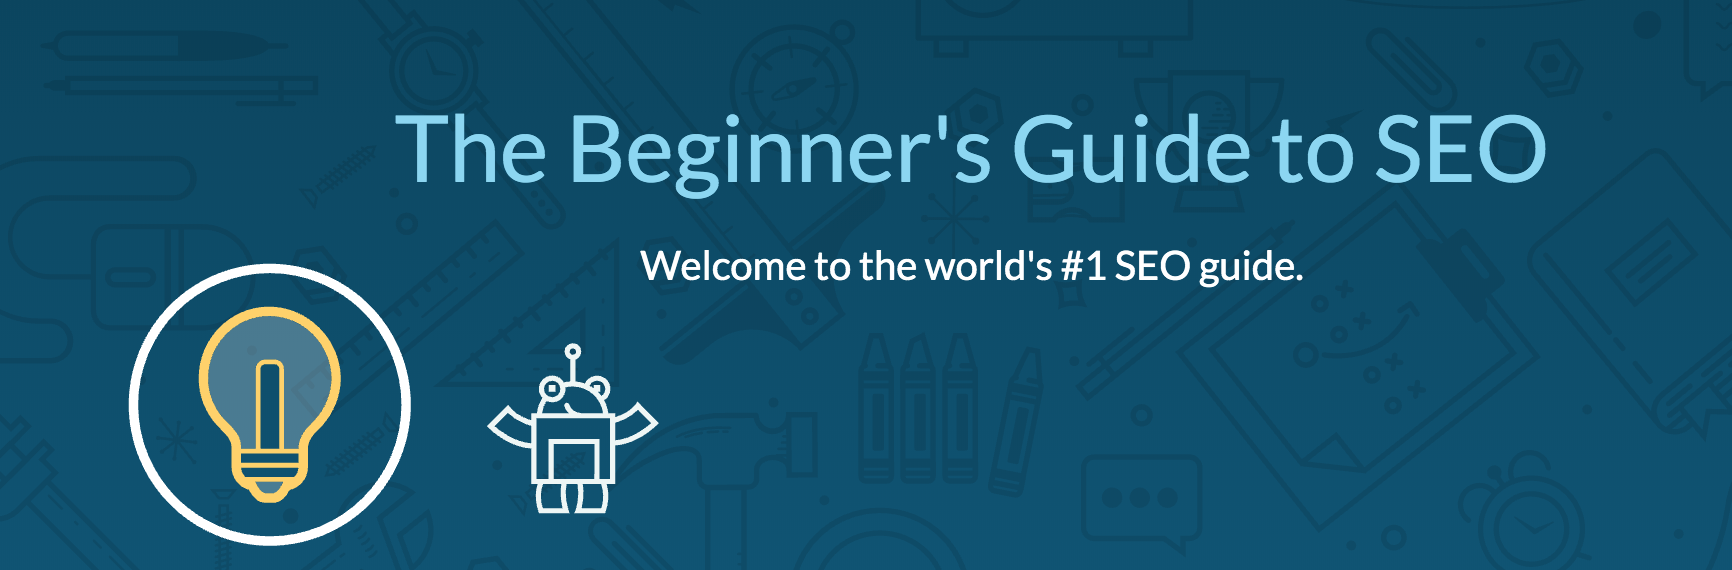 MOZ SEO Beginners Guide made them quite famous in the beginning